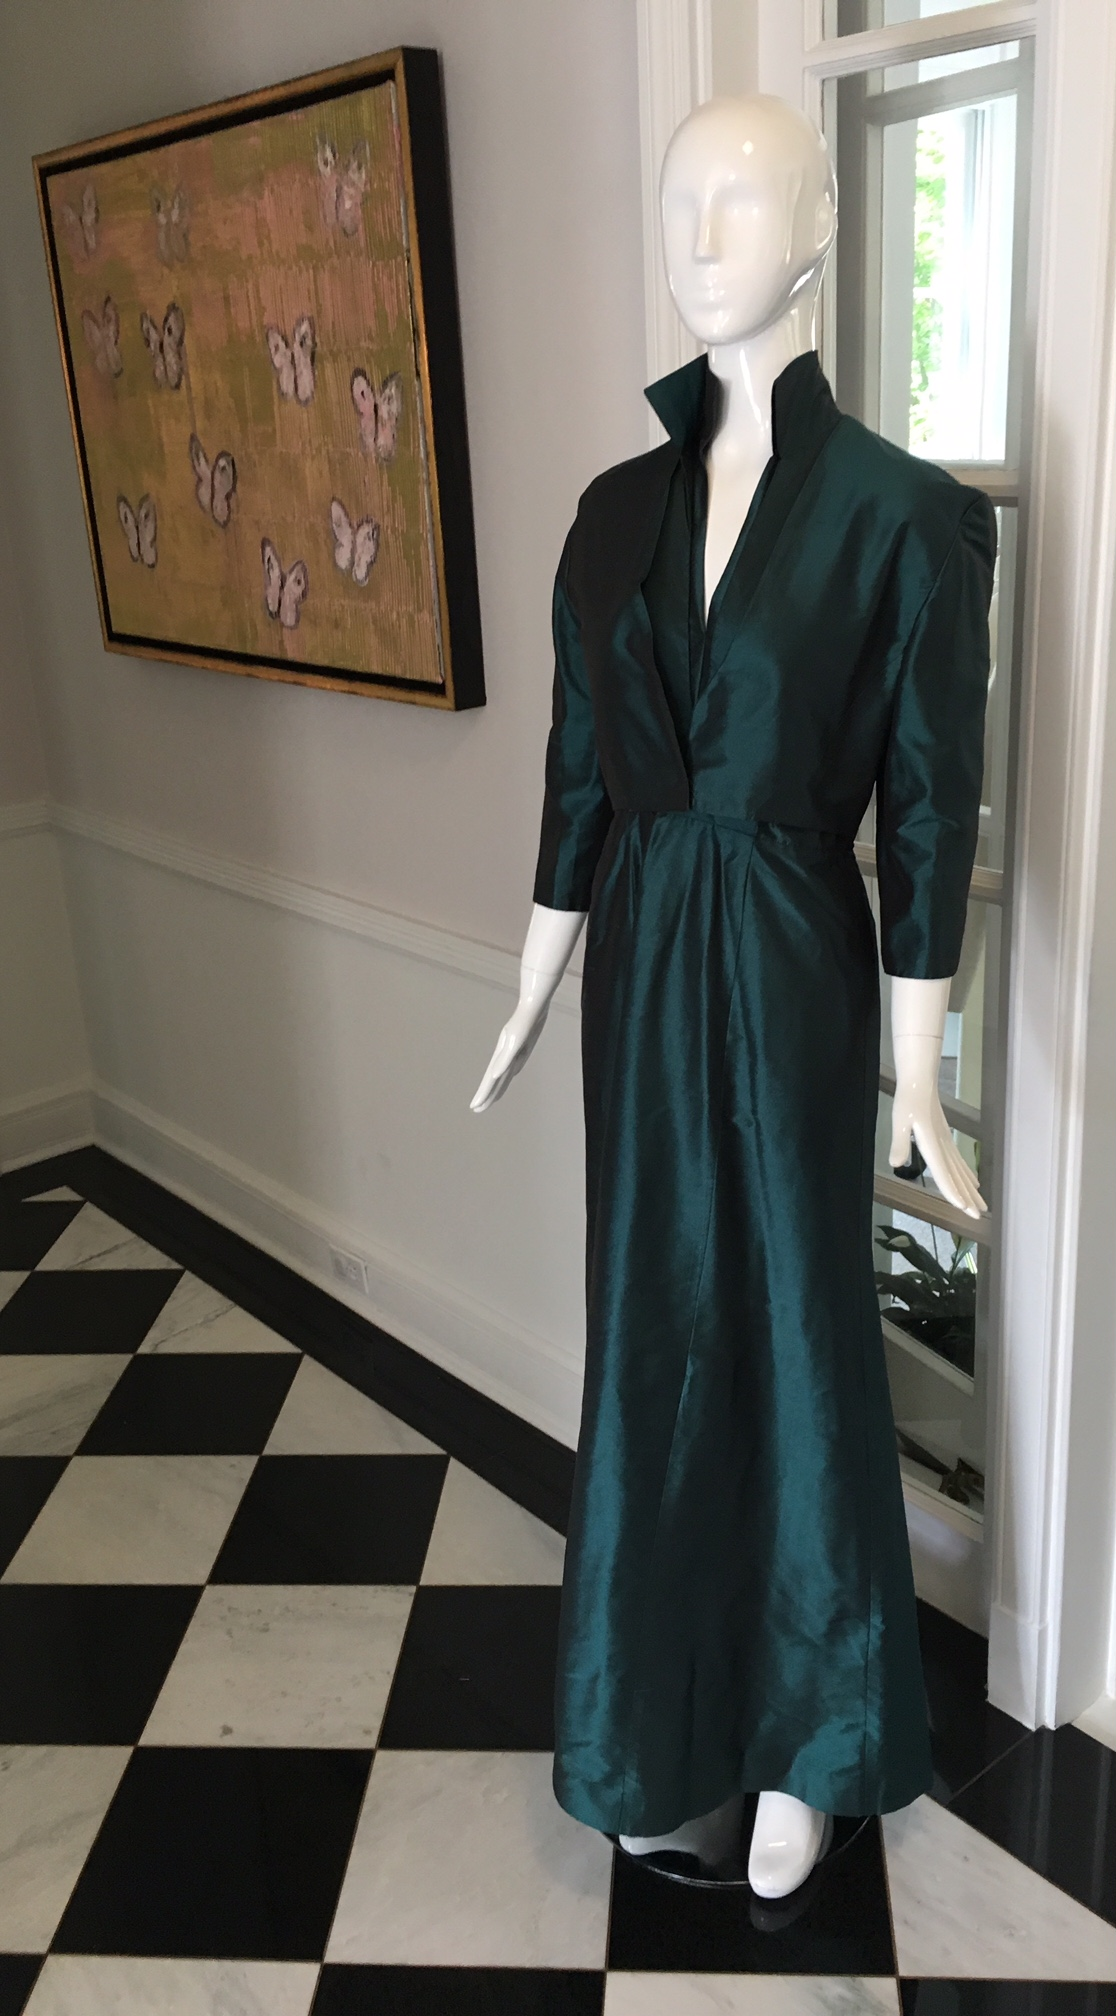 This custom Mother of the Groom gown and jacket created for the designer's mother was on display at the Victoria Cullinan brand launch party.